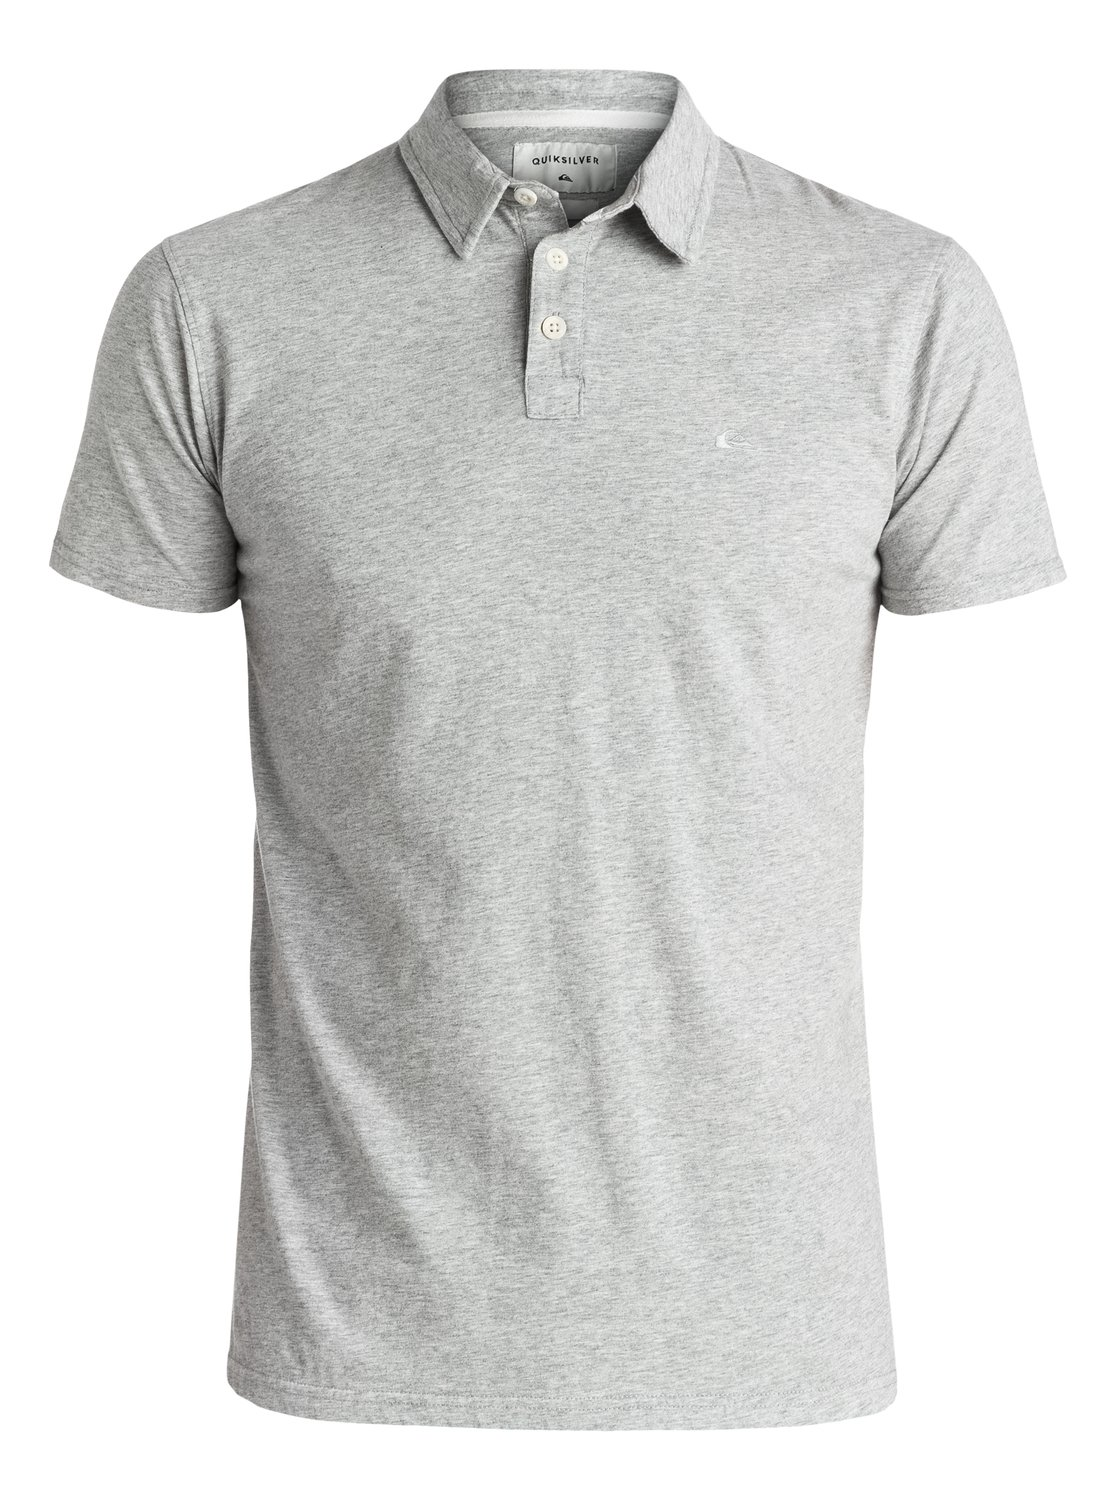 Koszulka Polo Quiksilver Everyday Sun Cruise (Light Grey Heather) Ss17